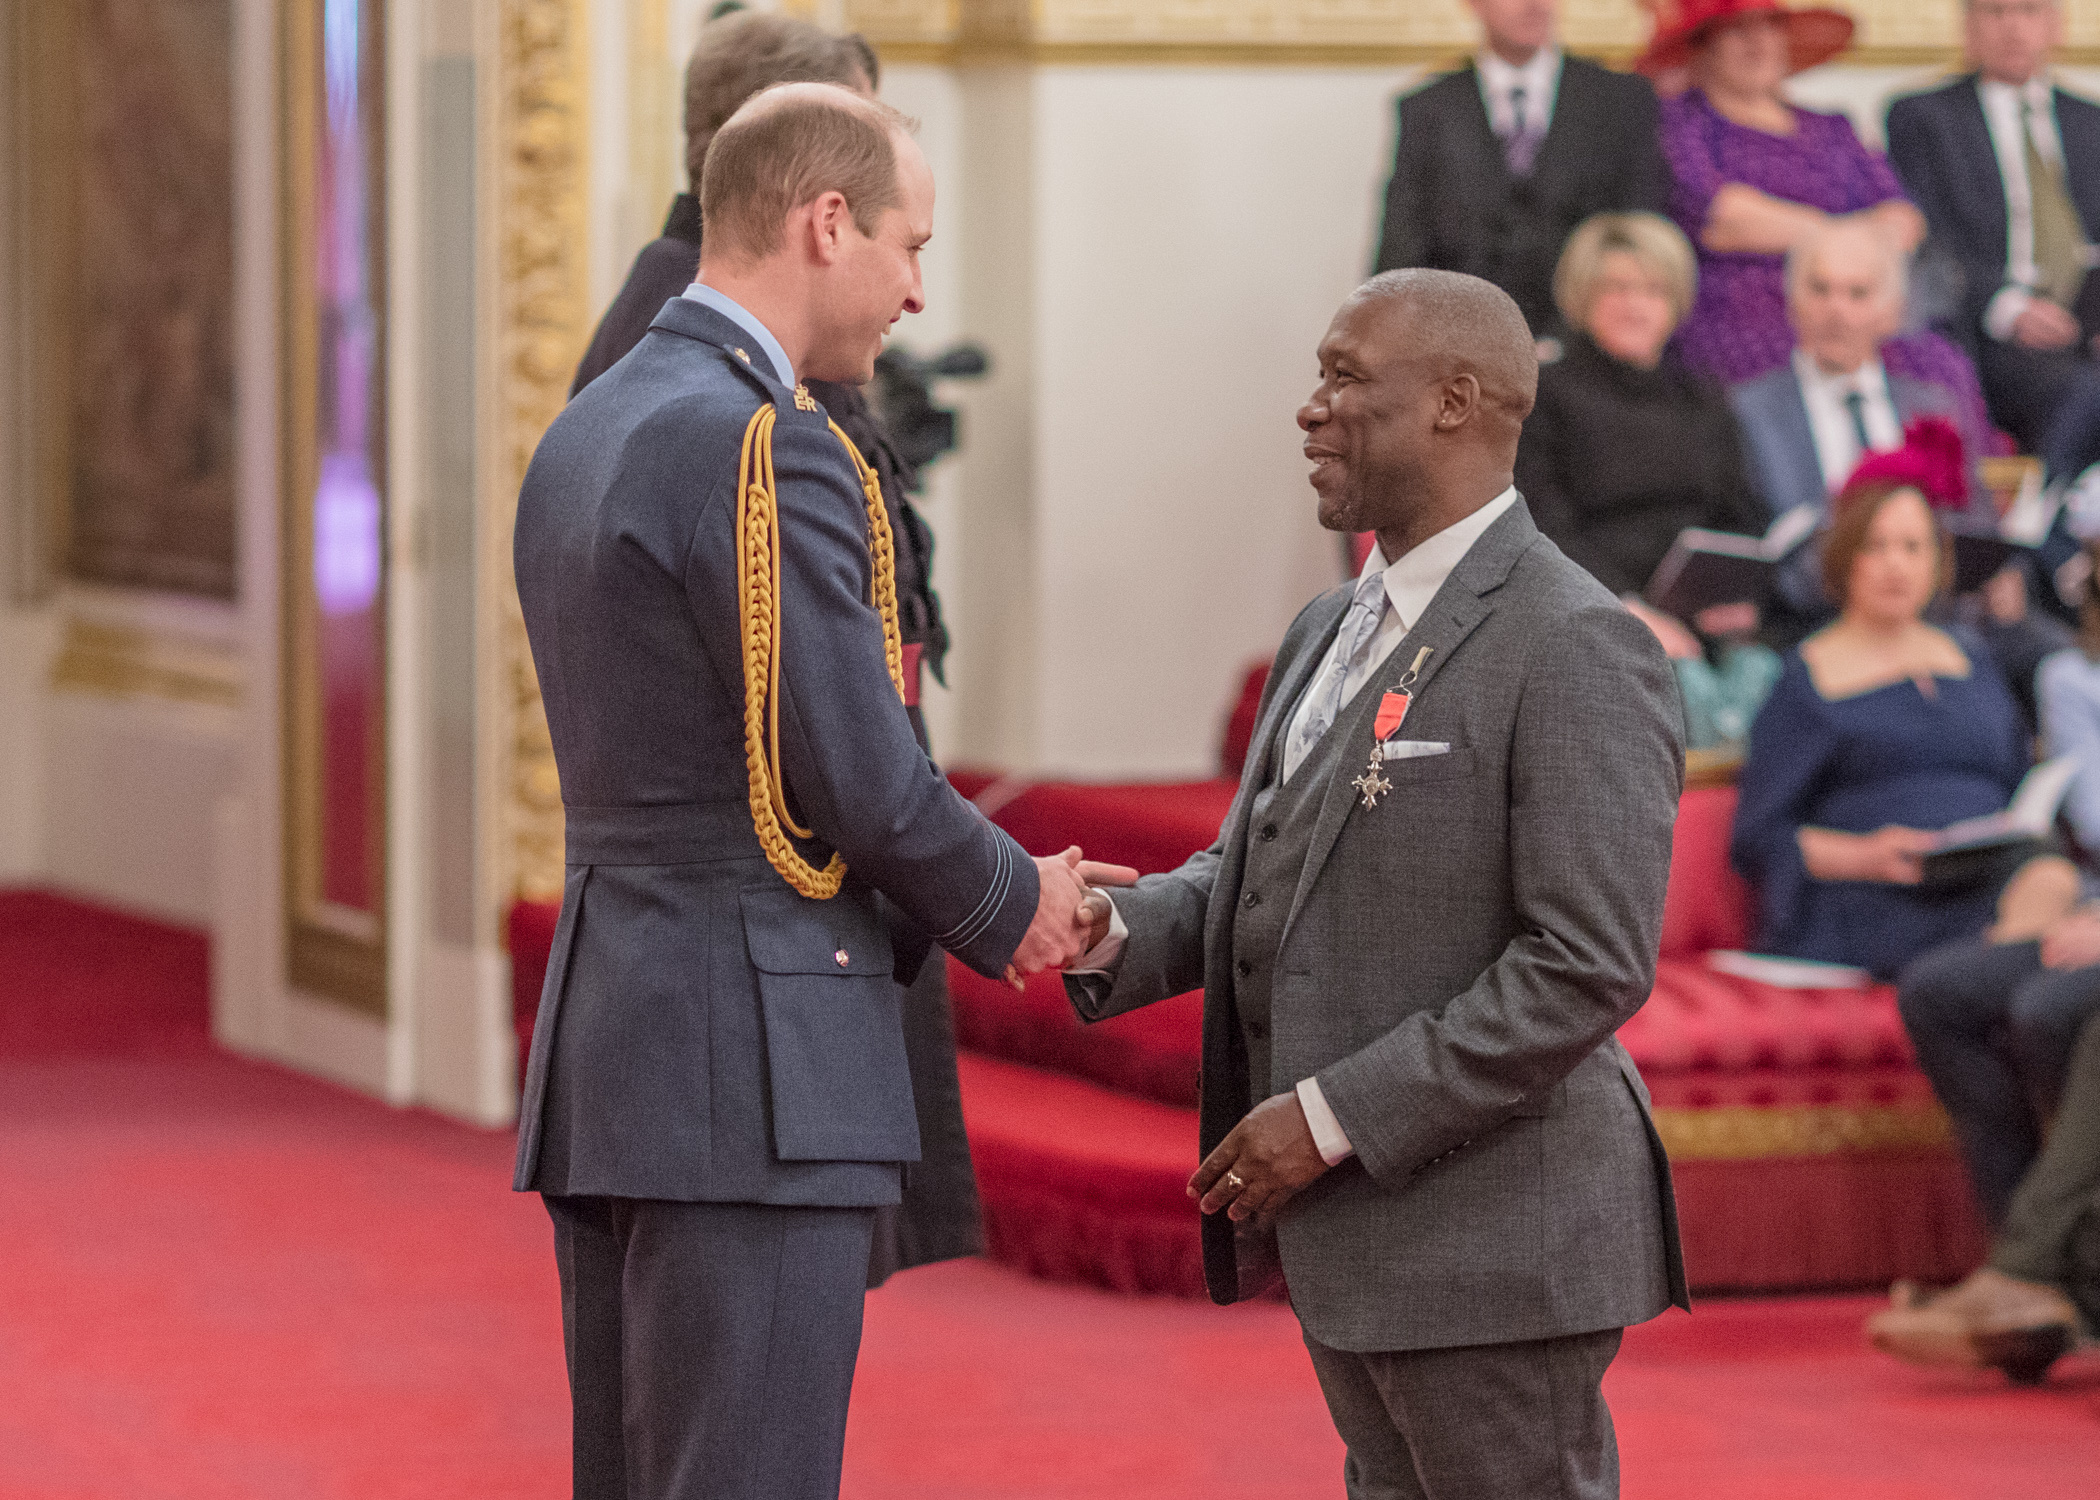 Recieving MBE